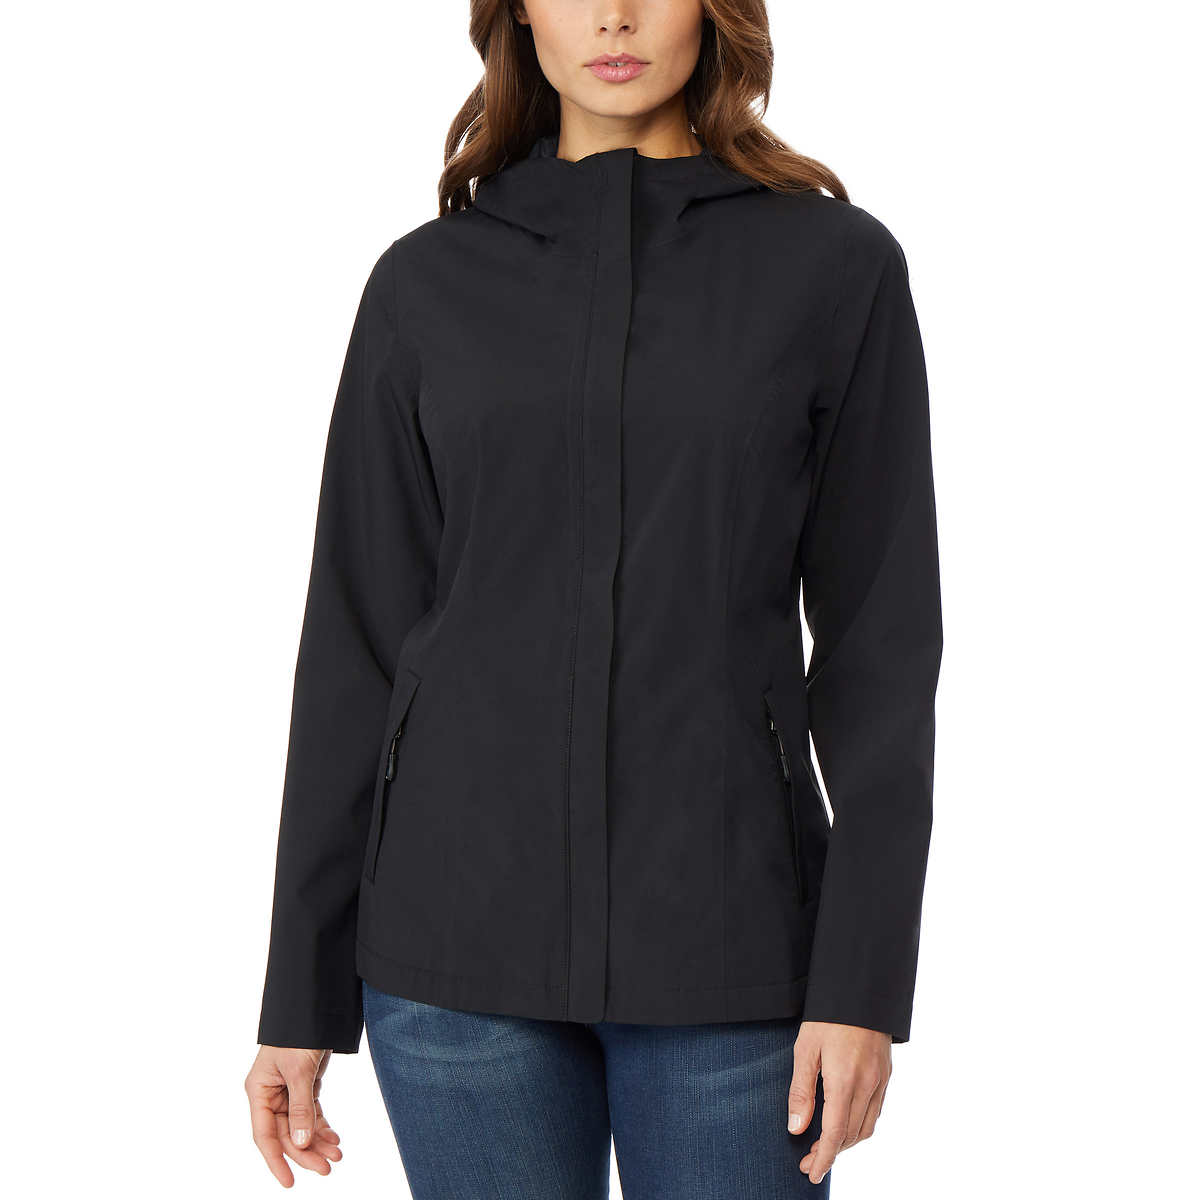 cc0737f4637d8 32 Degrees Ladies  Rain Jacket. 1 1